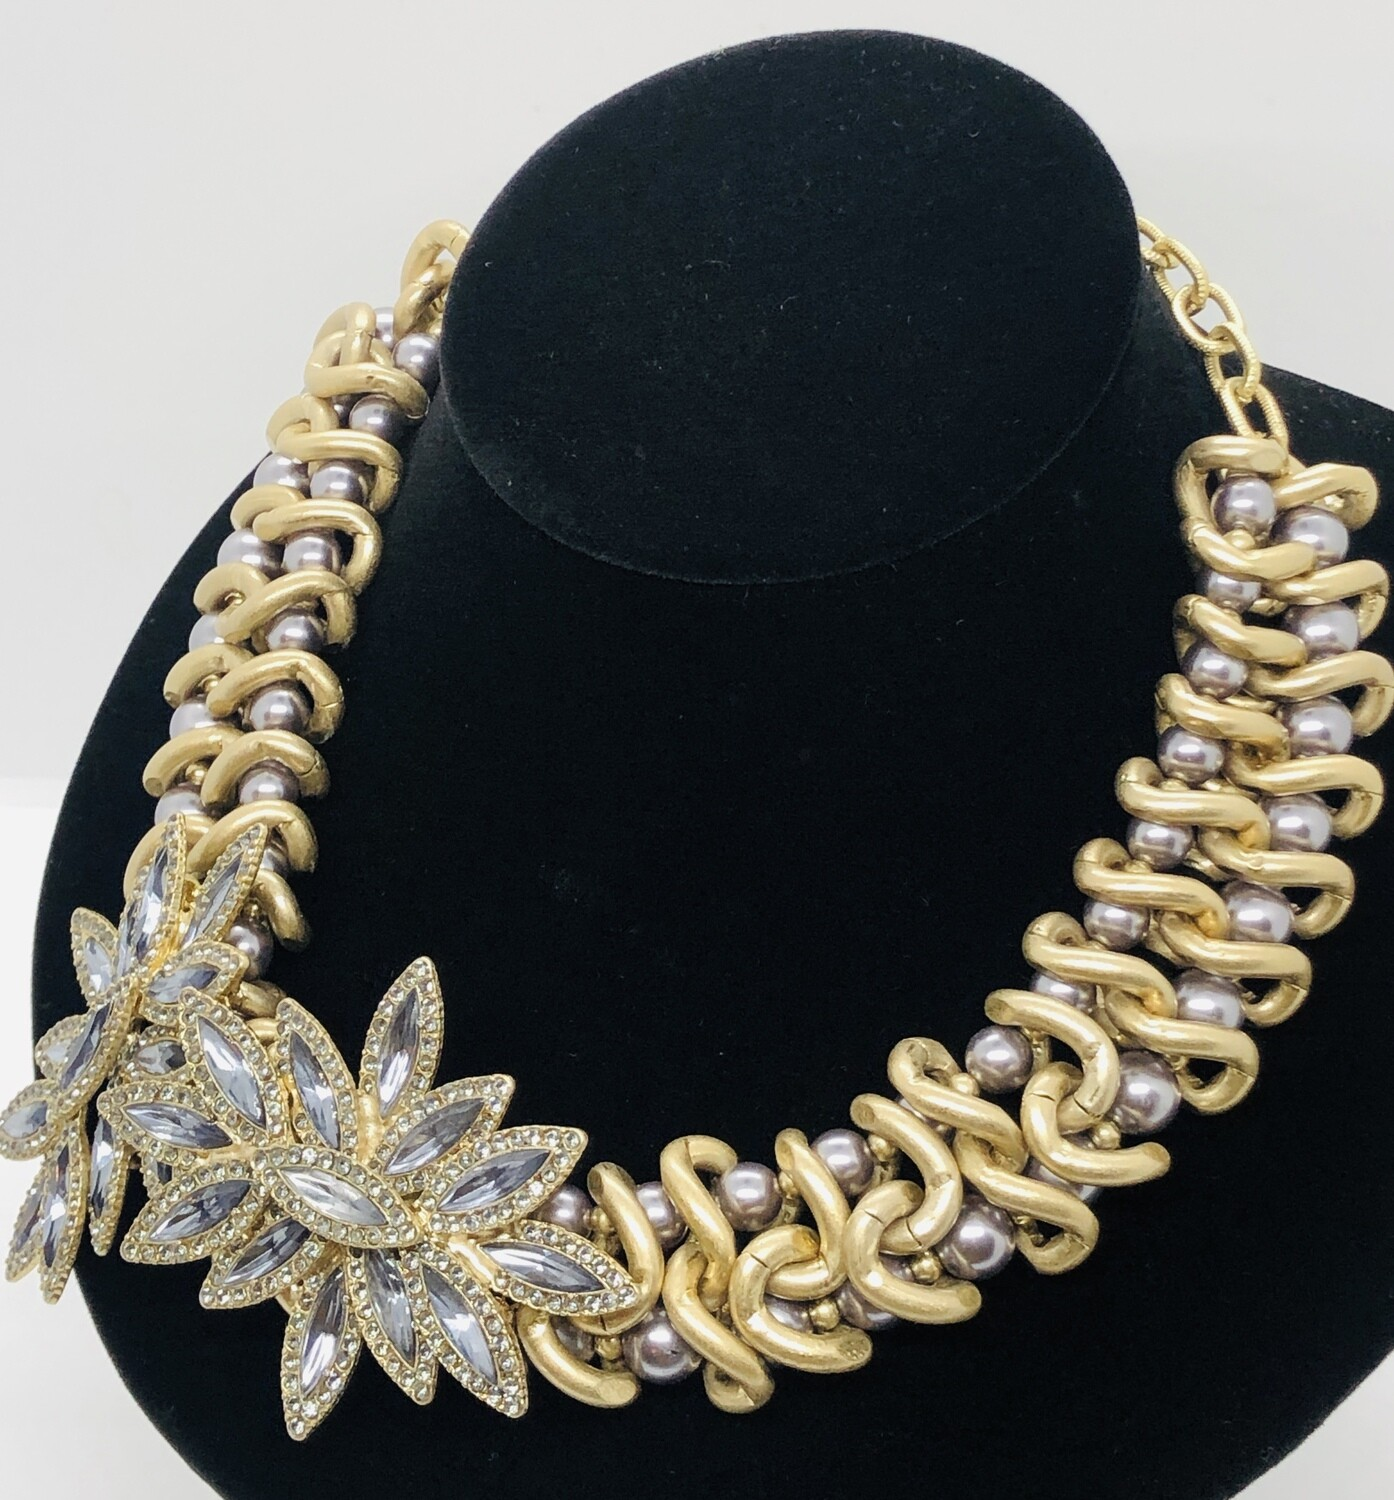 Ann Taylor LOFT Brushed Gold, Rhinestone & Pearl Statement Necklace